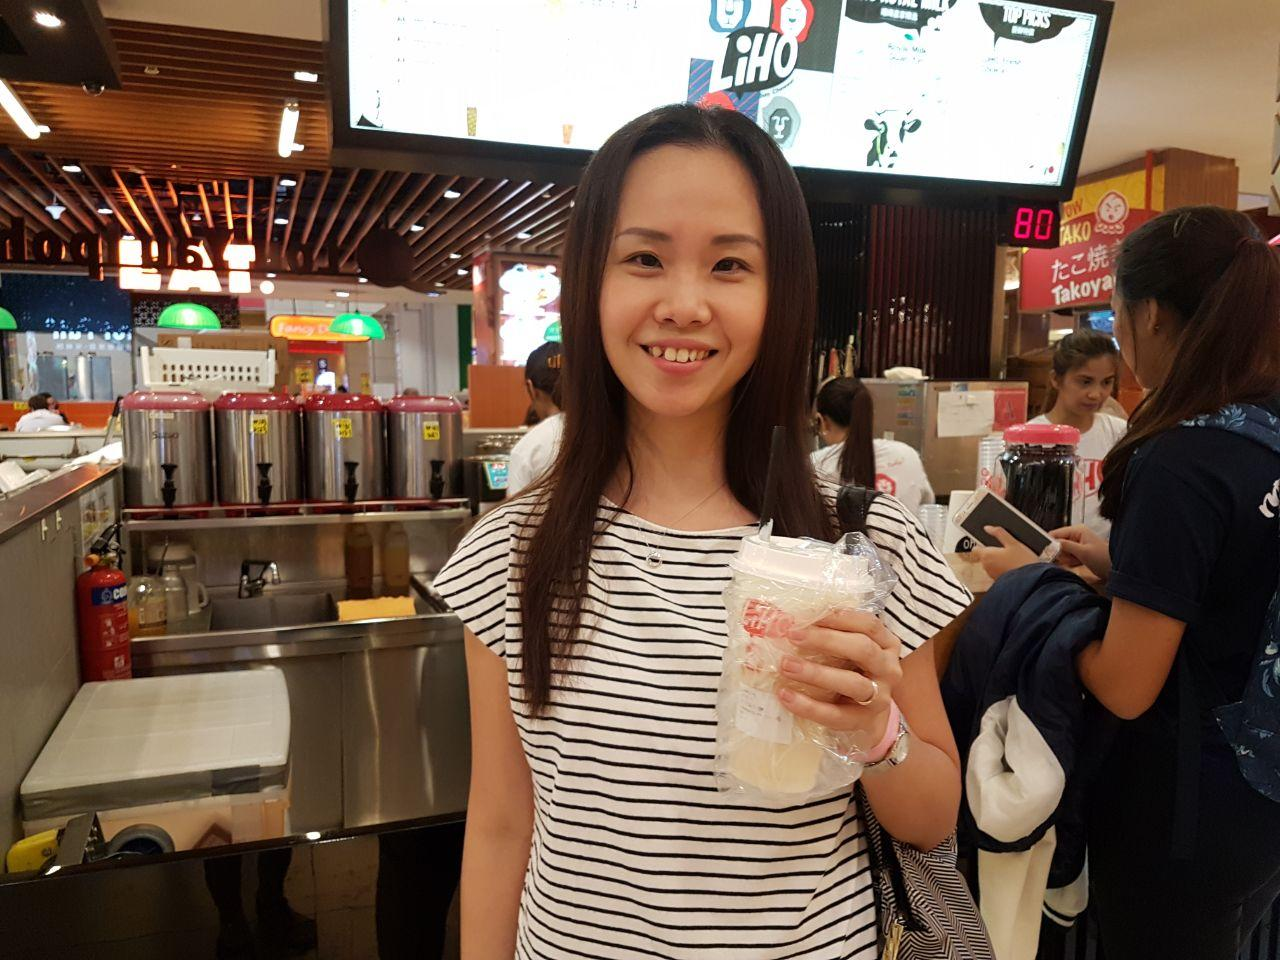 <p>Gong Cha customer Eunice Kwoh tries bubble tea from LiHo. (Photo: Audrey Kang/Yahoo Lifestyle Singapore) </p>